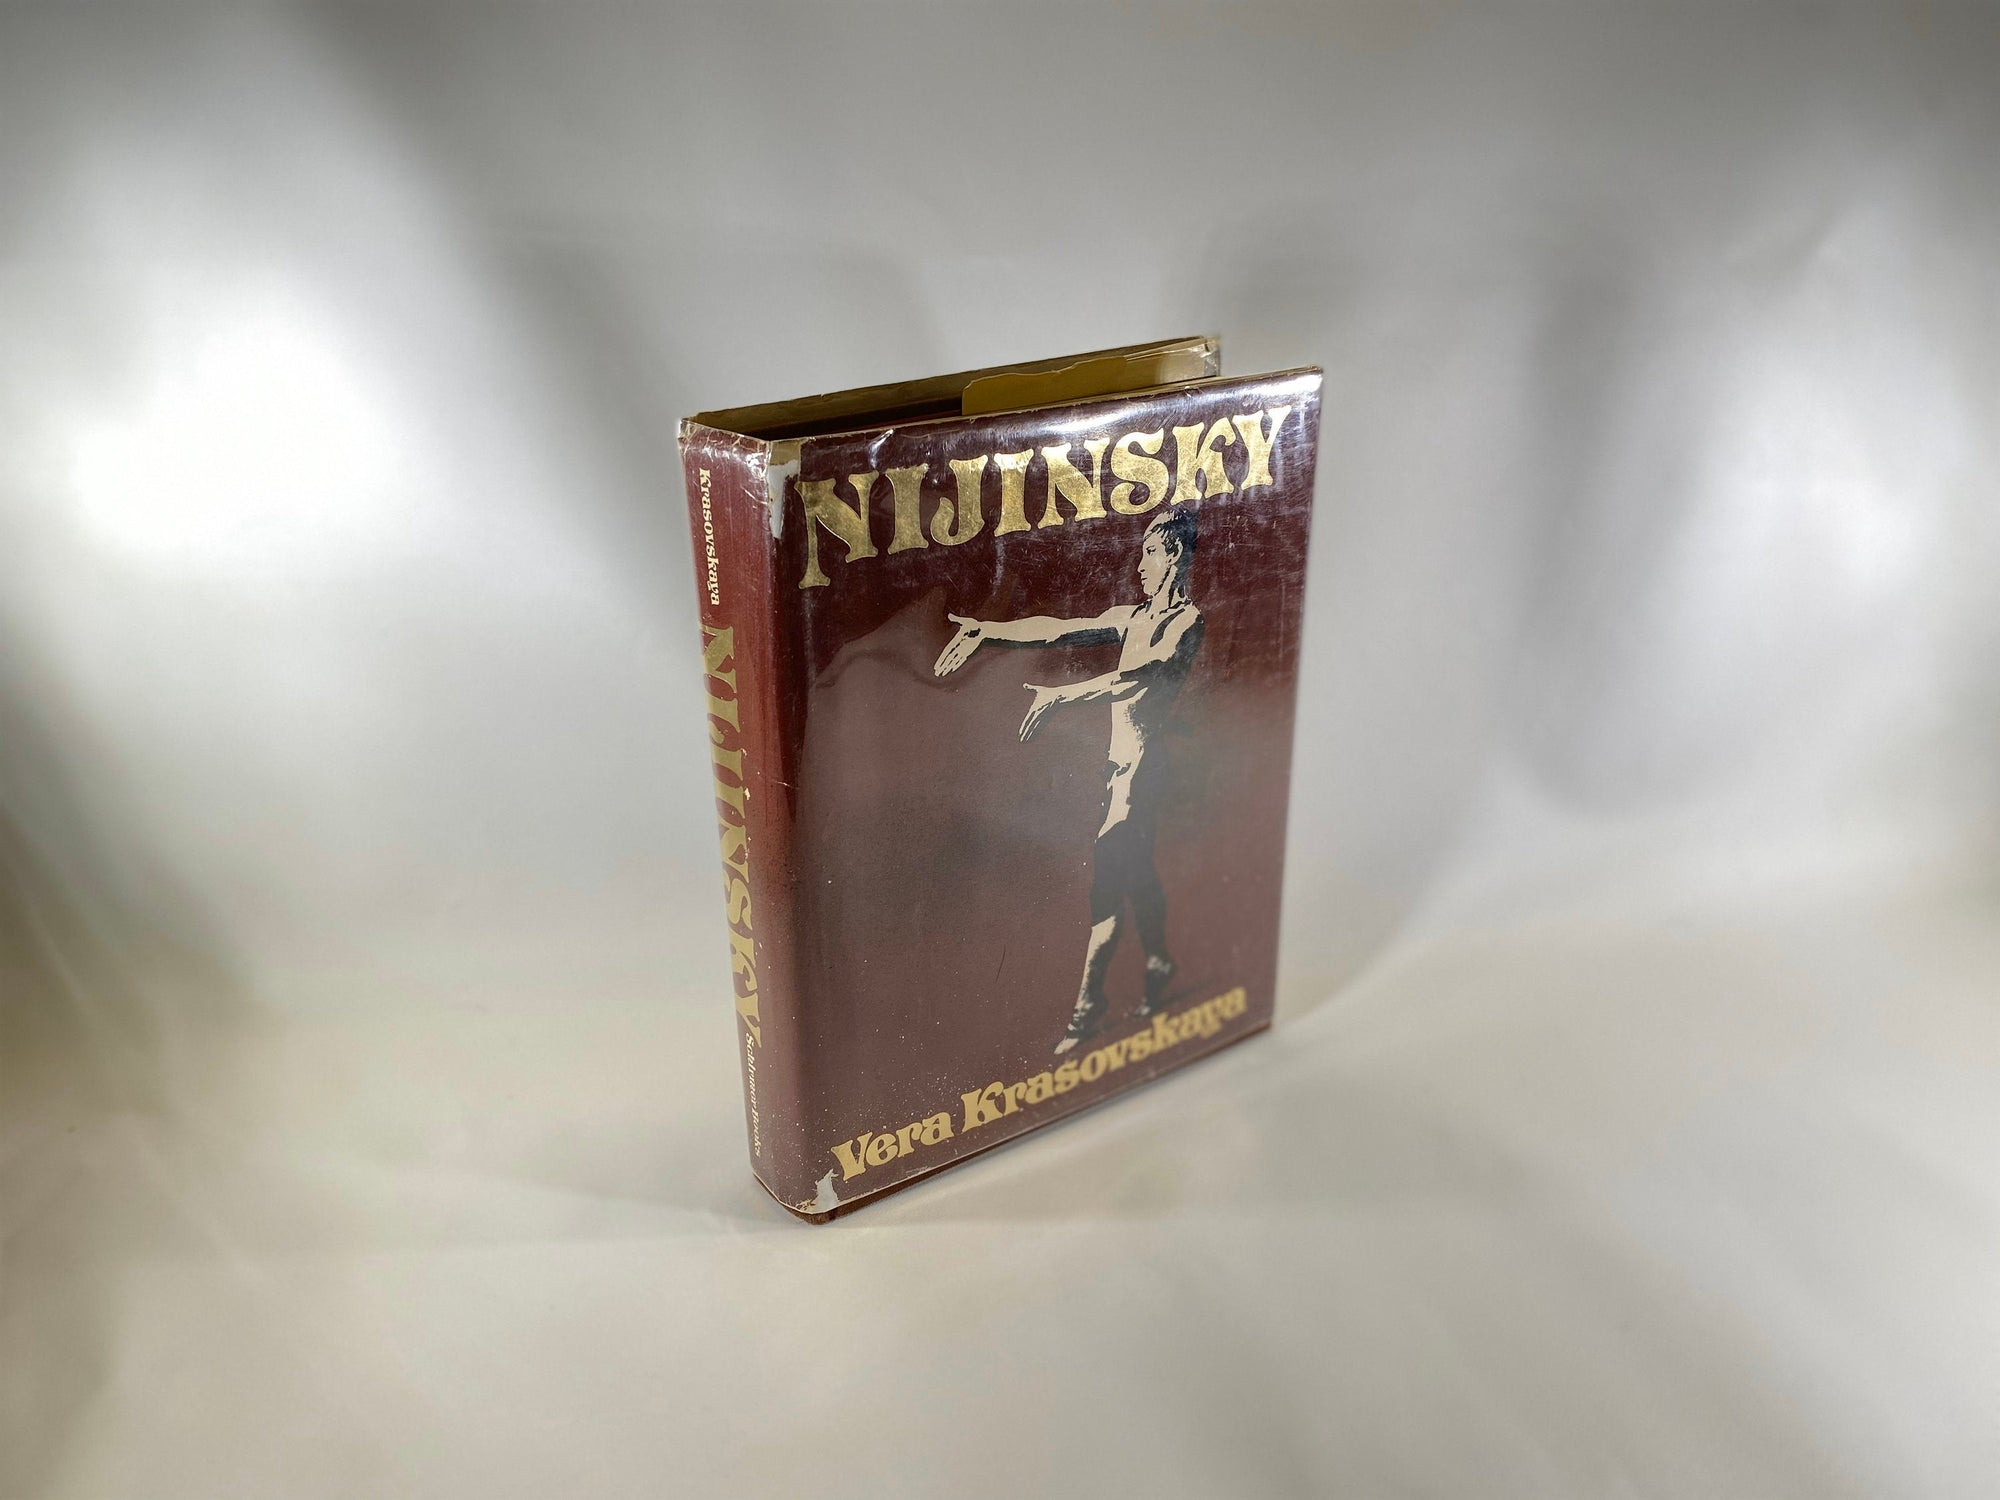 Nijinsky by Vera Krasovskaya 1979 First Edition English Version